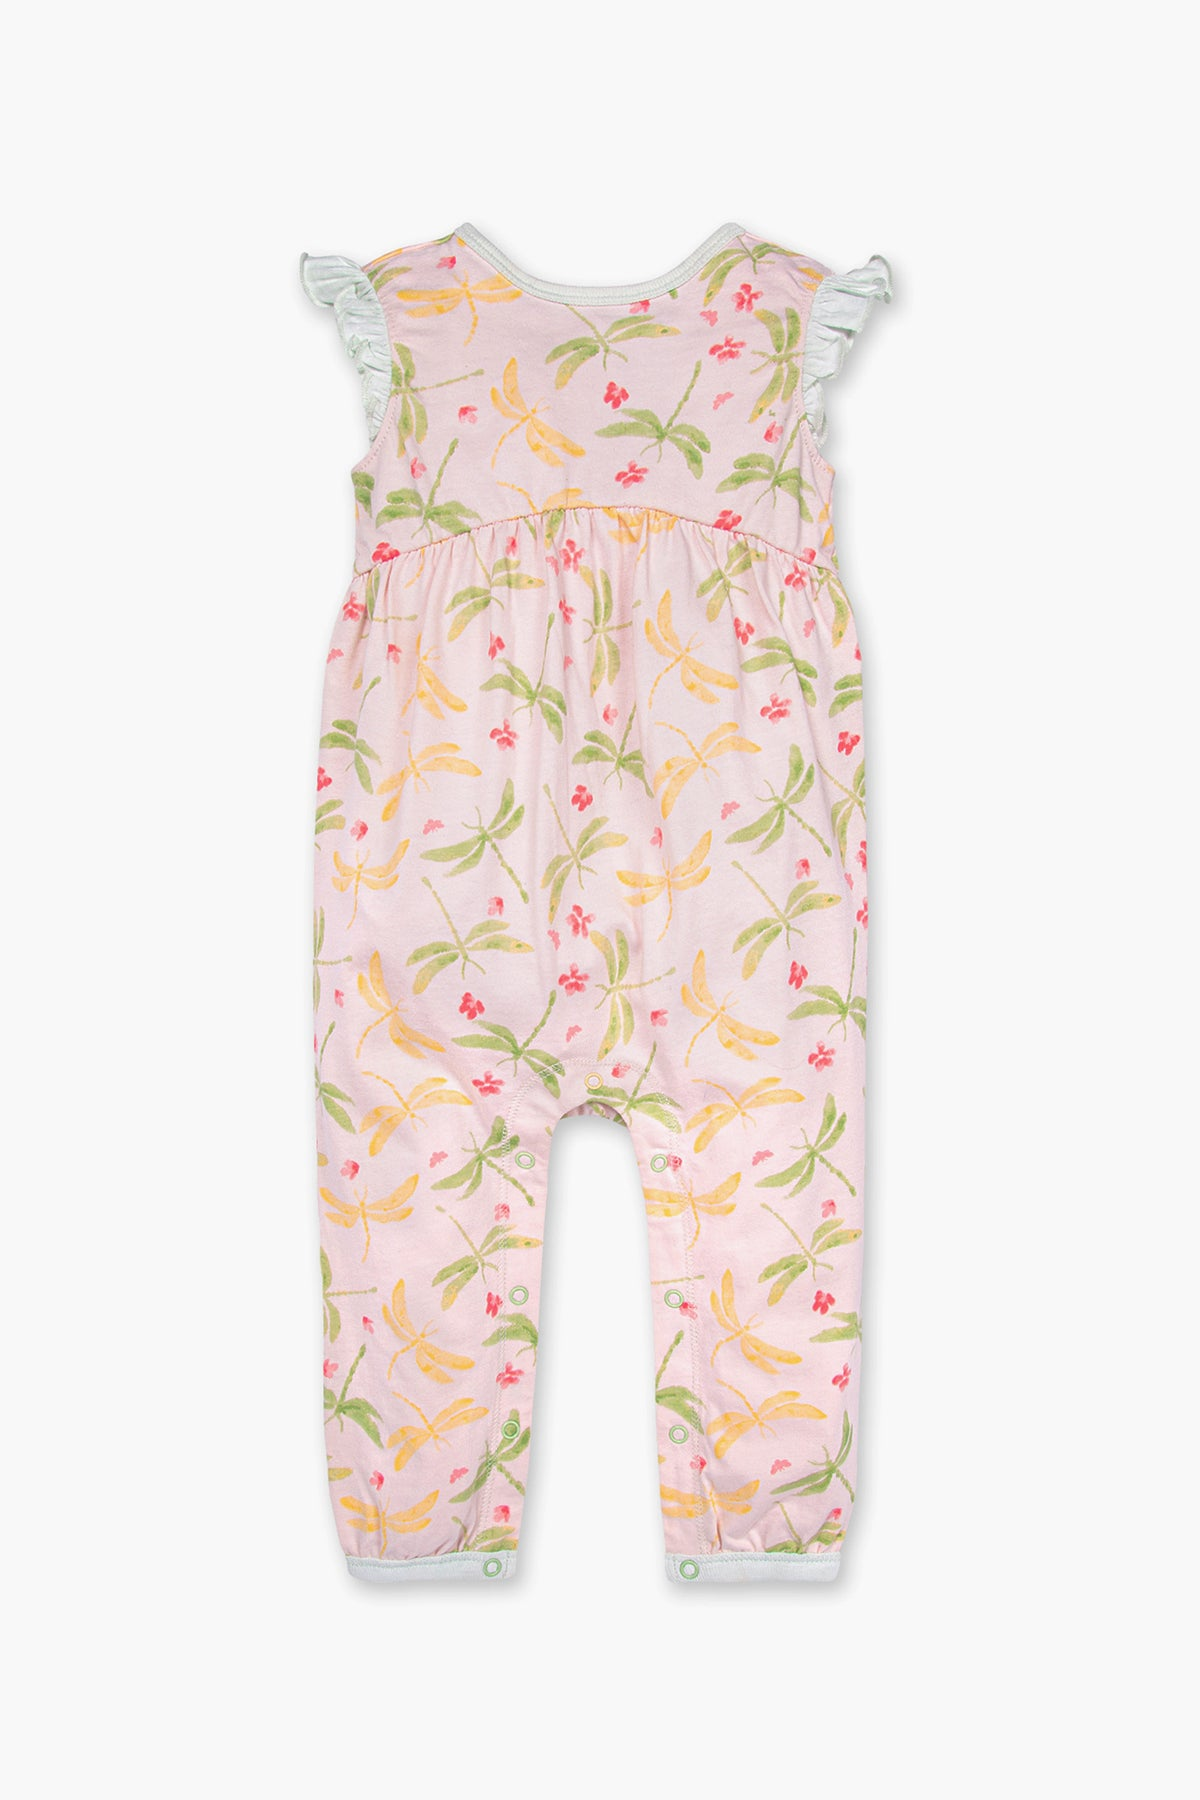 Burt's Bees Dragonfly Baby Girls Jumpsuit